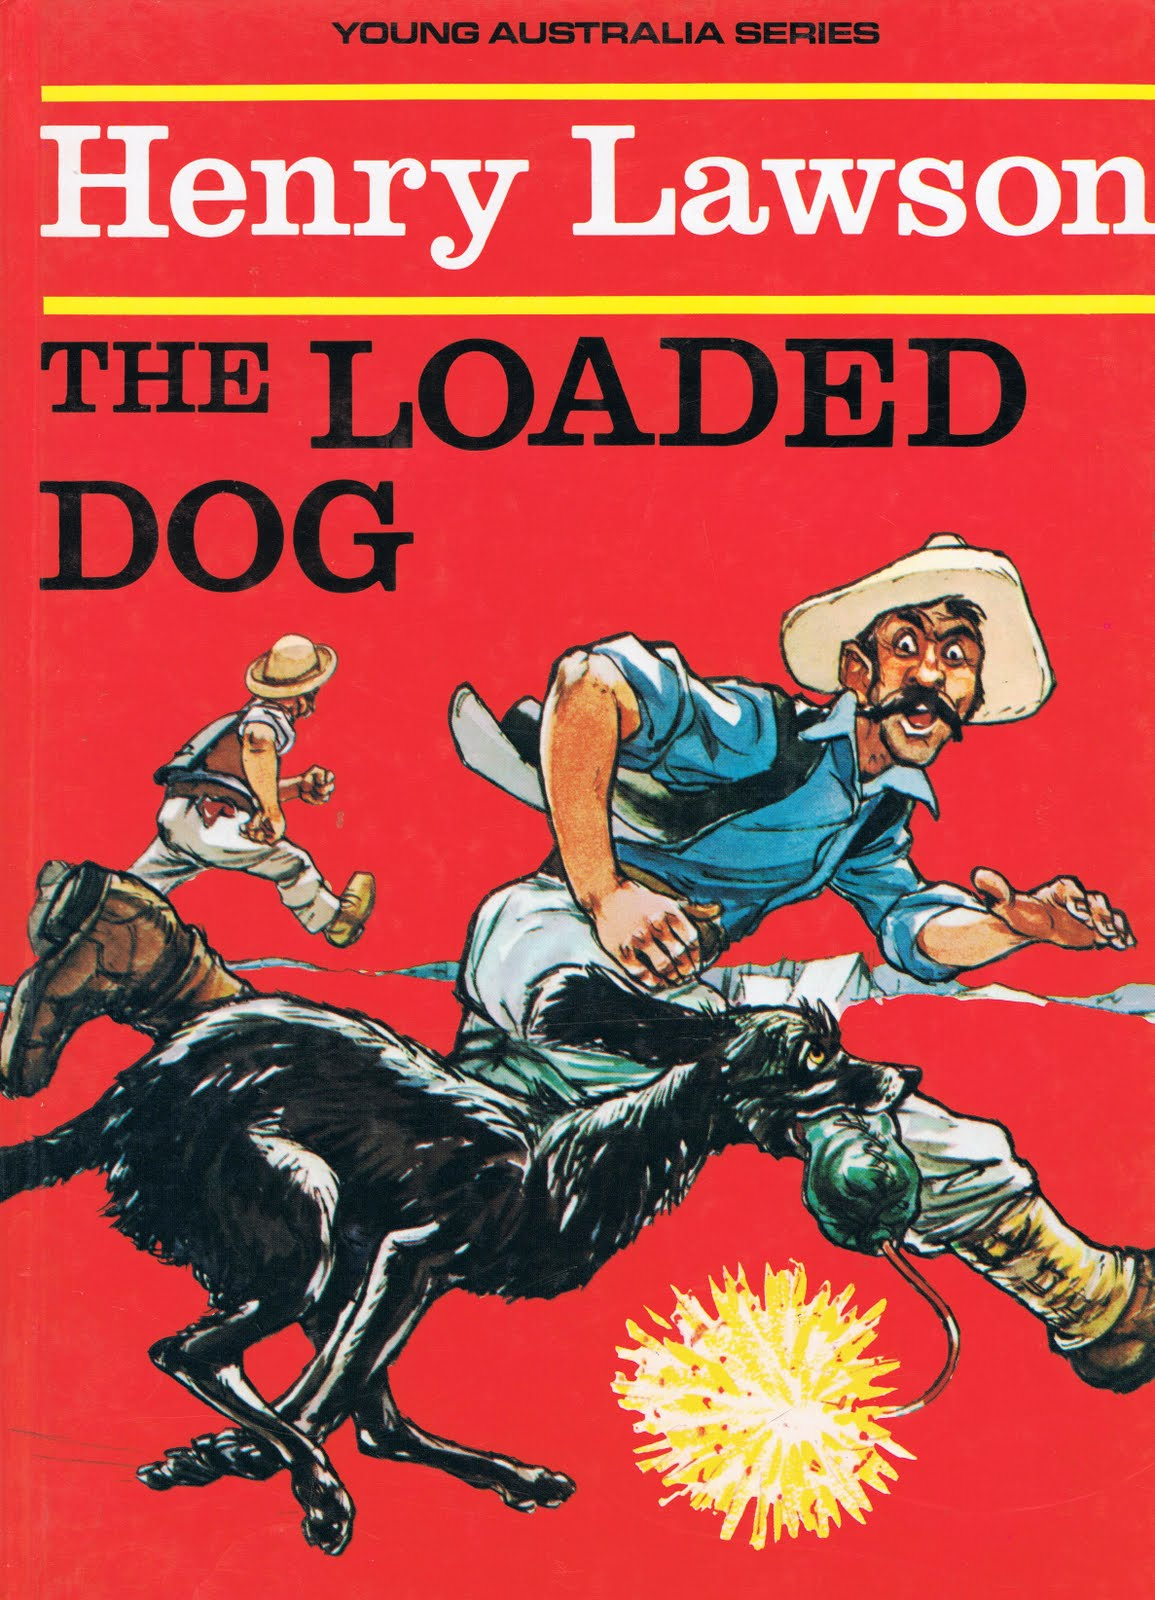 Henry Lawson poems the loaded dog